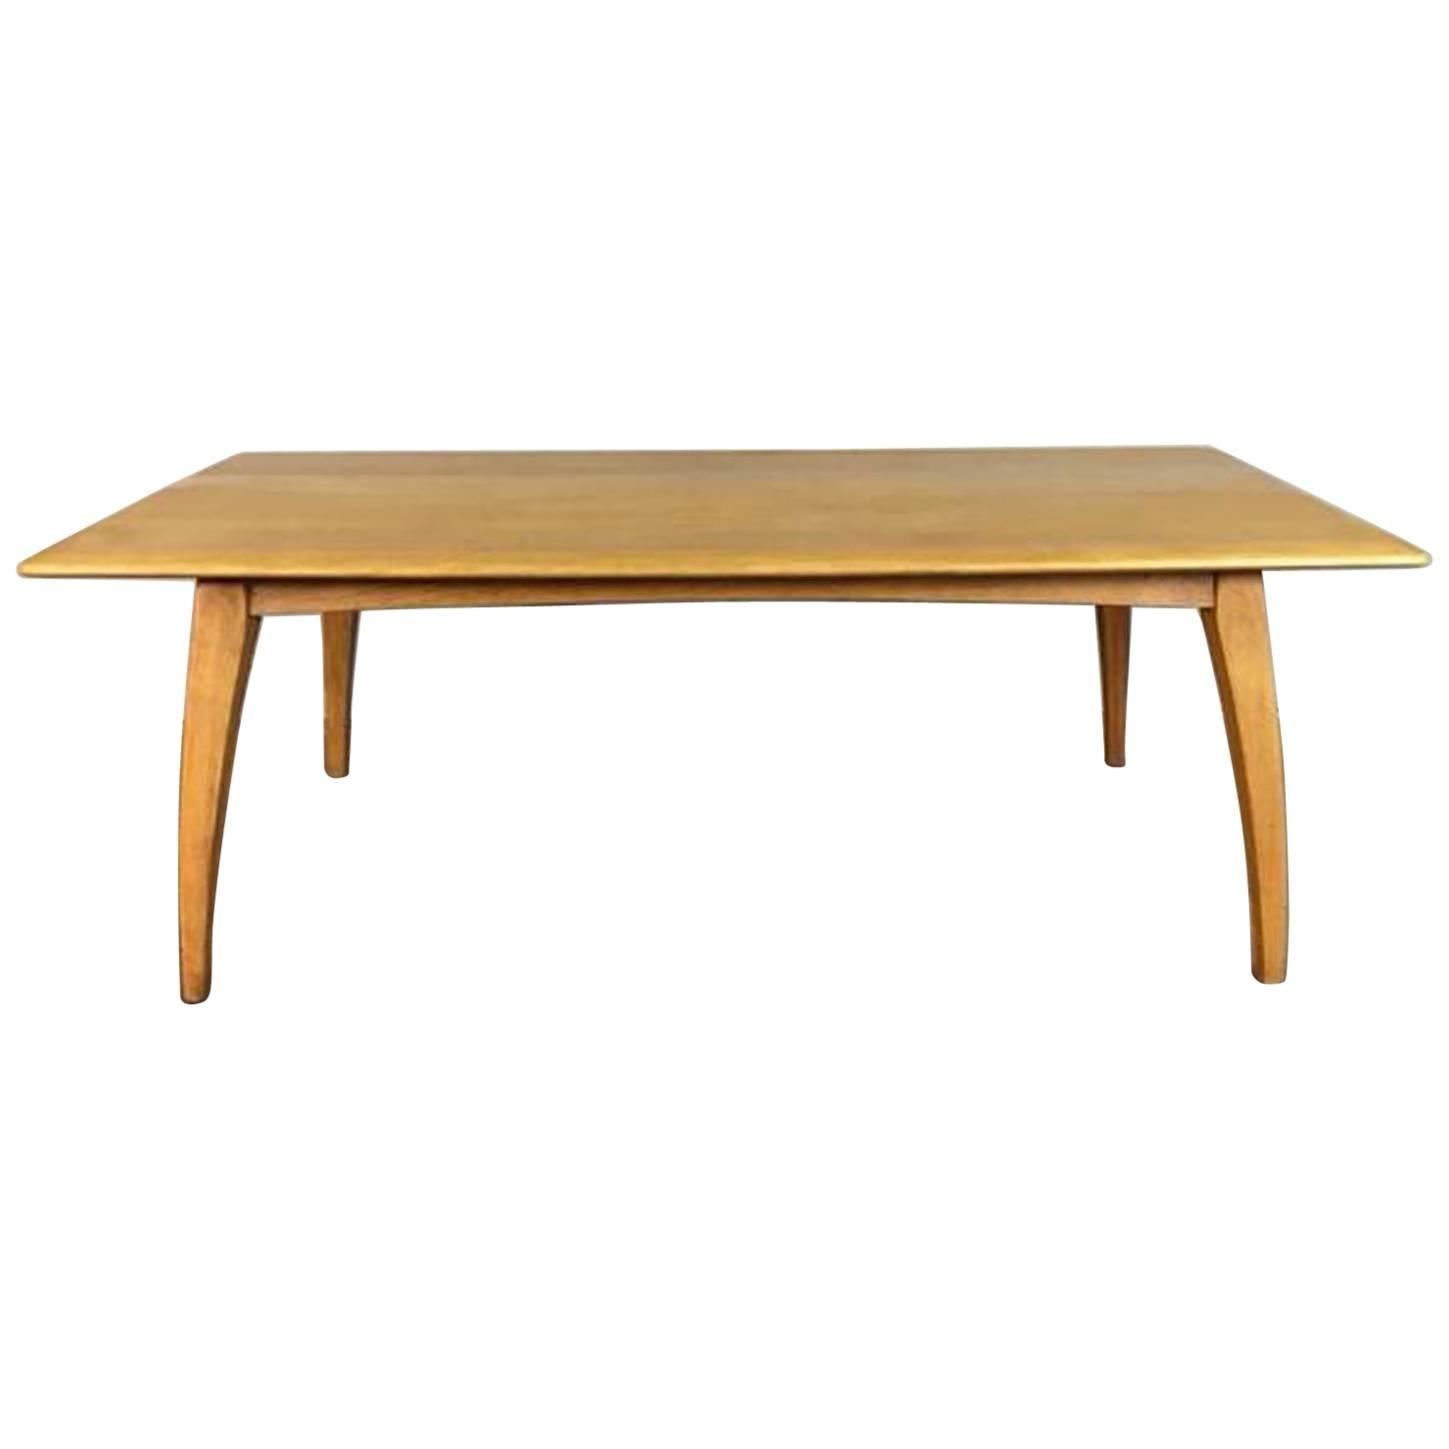 HeywoodWakefield Co Tables 53 For Sale at 1stdibs